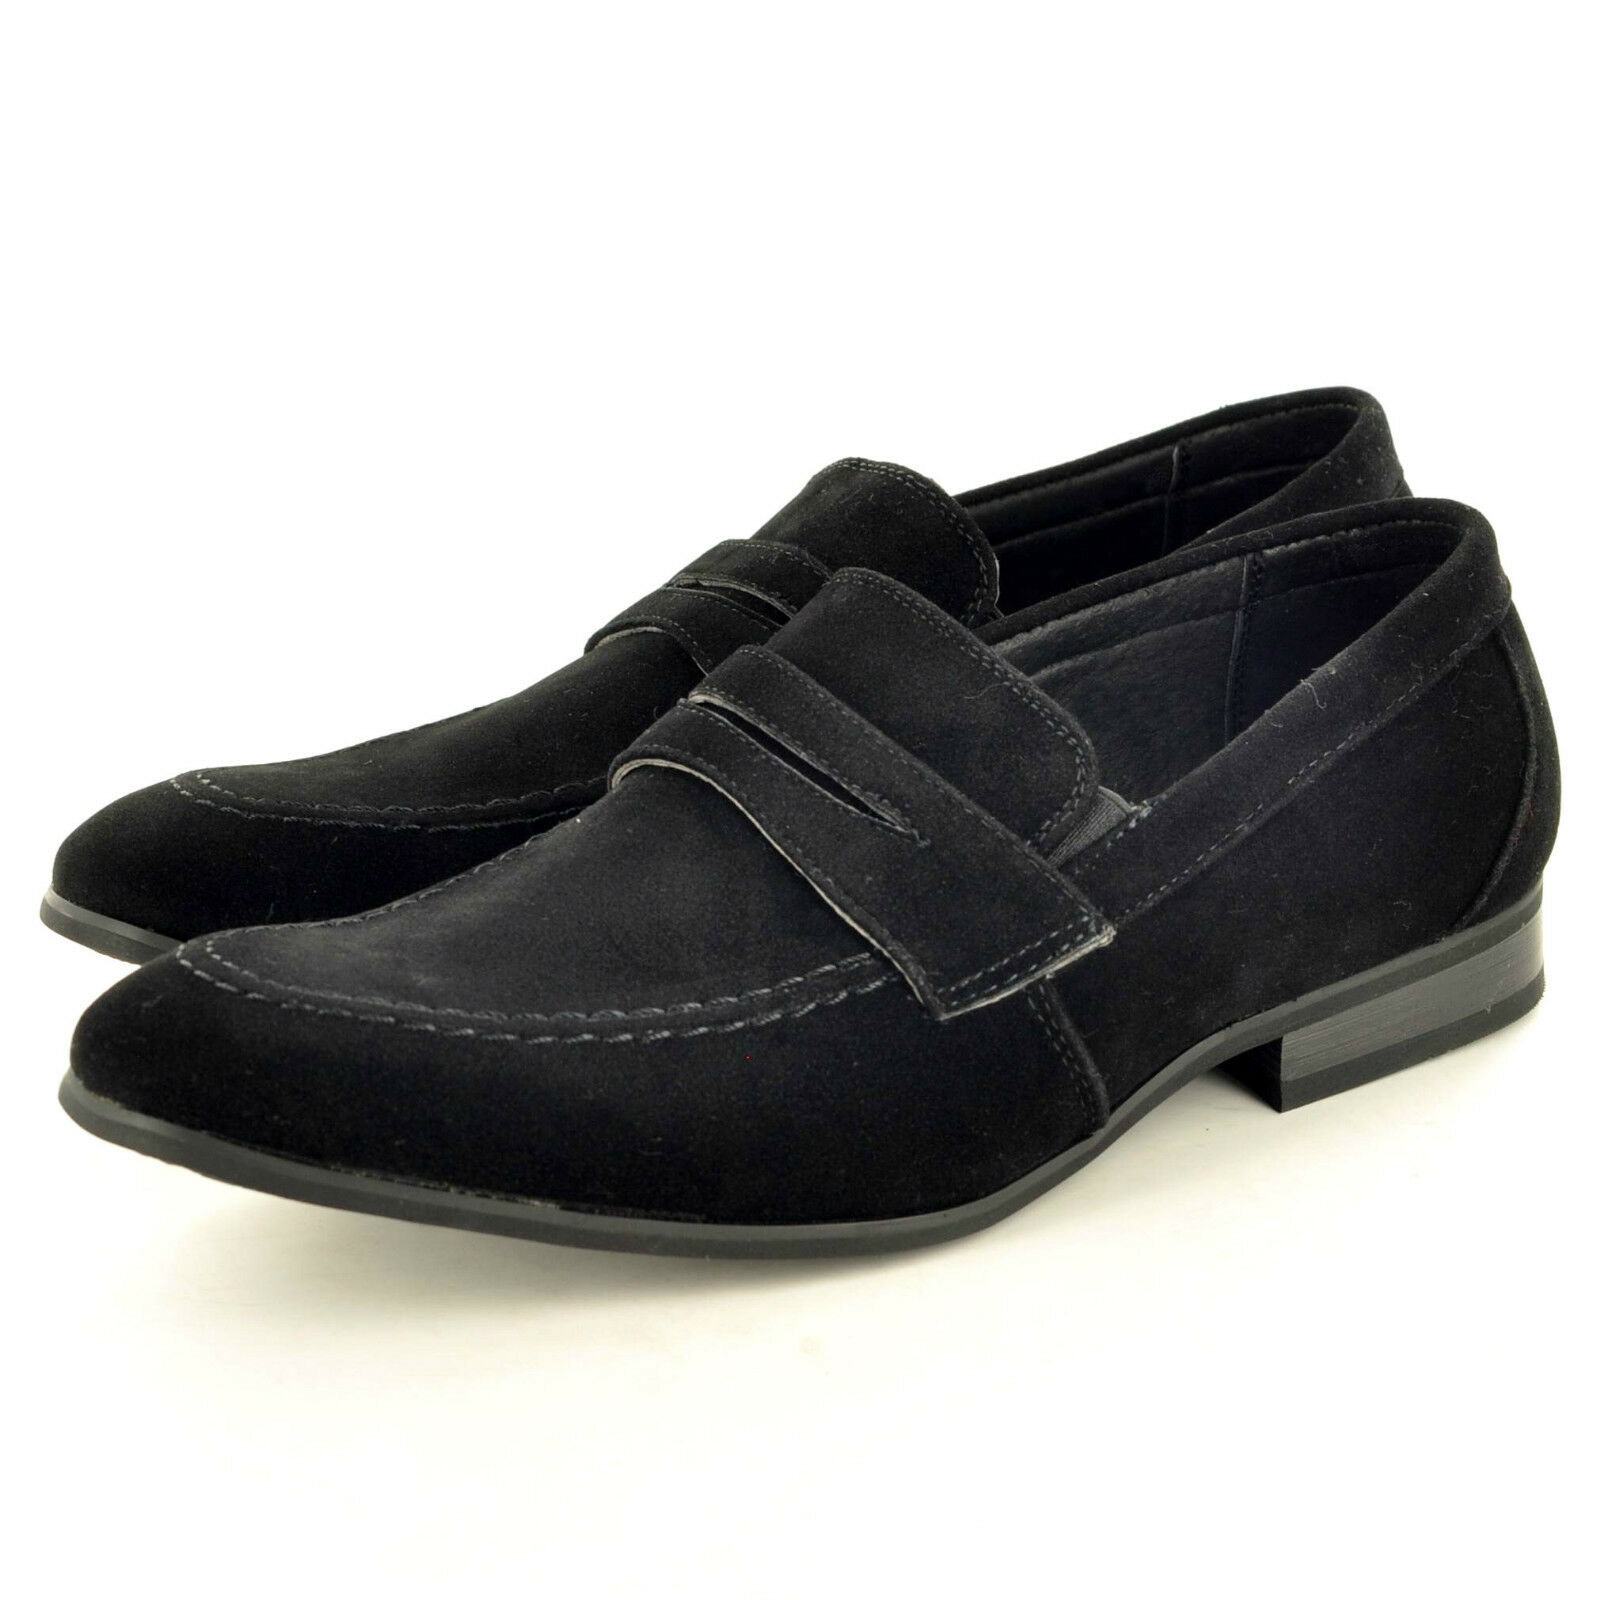 New Men's On black Leather Lined Slip On Men's Suede Loafers Driving Shoes  UK Size 6-11 01d554